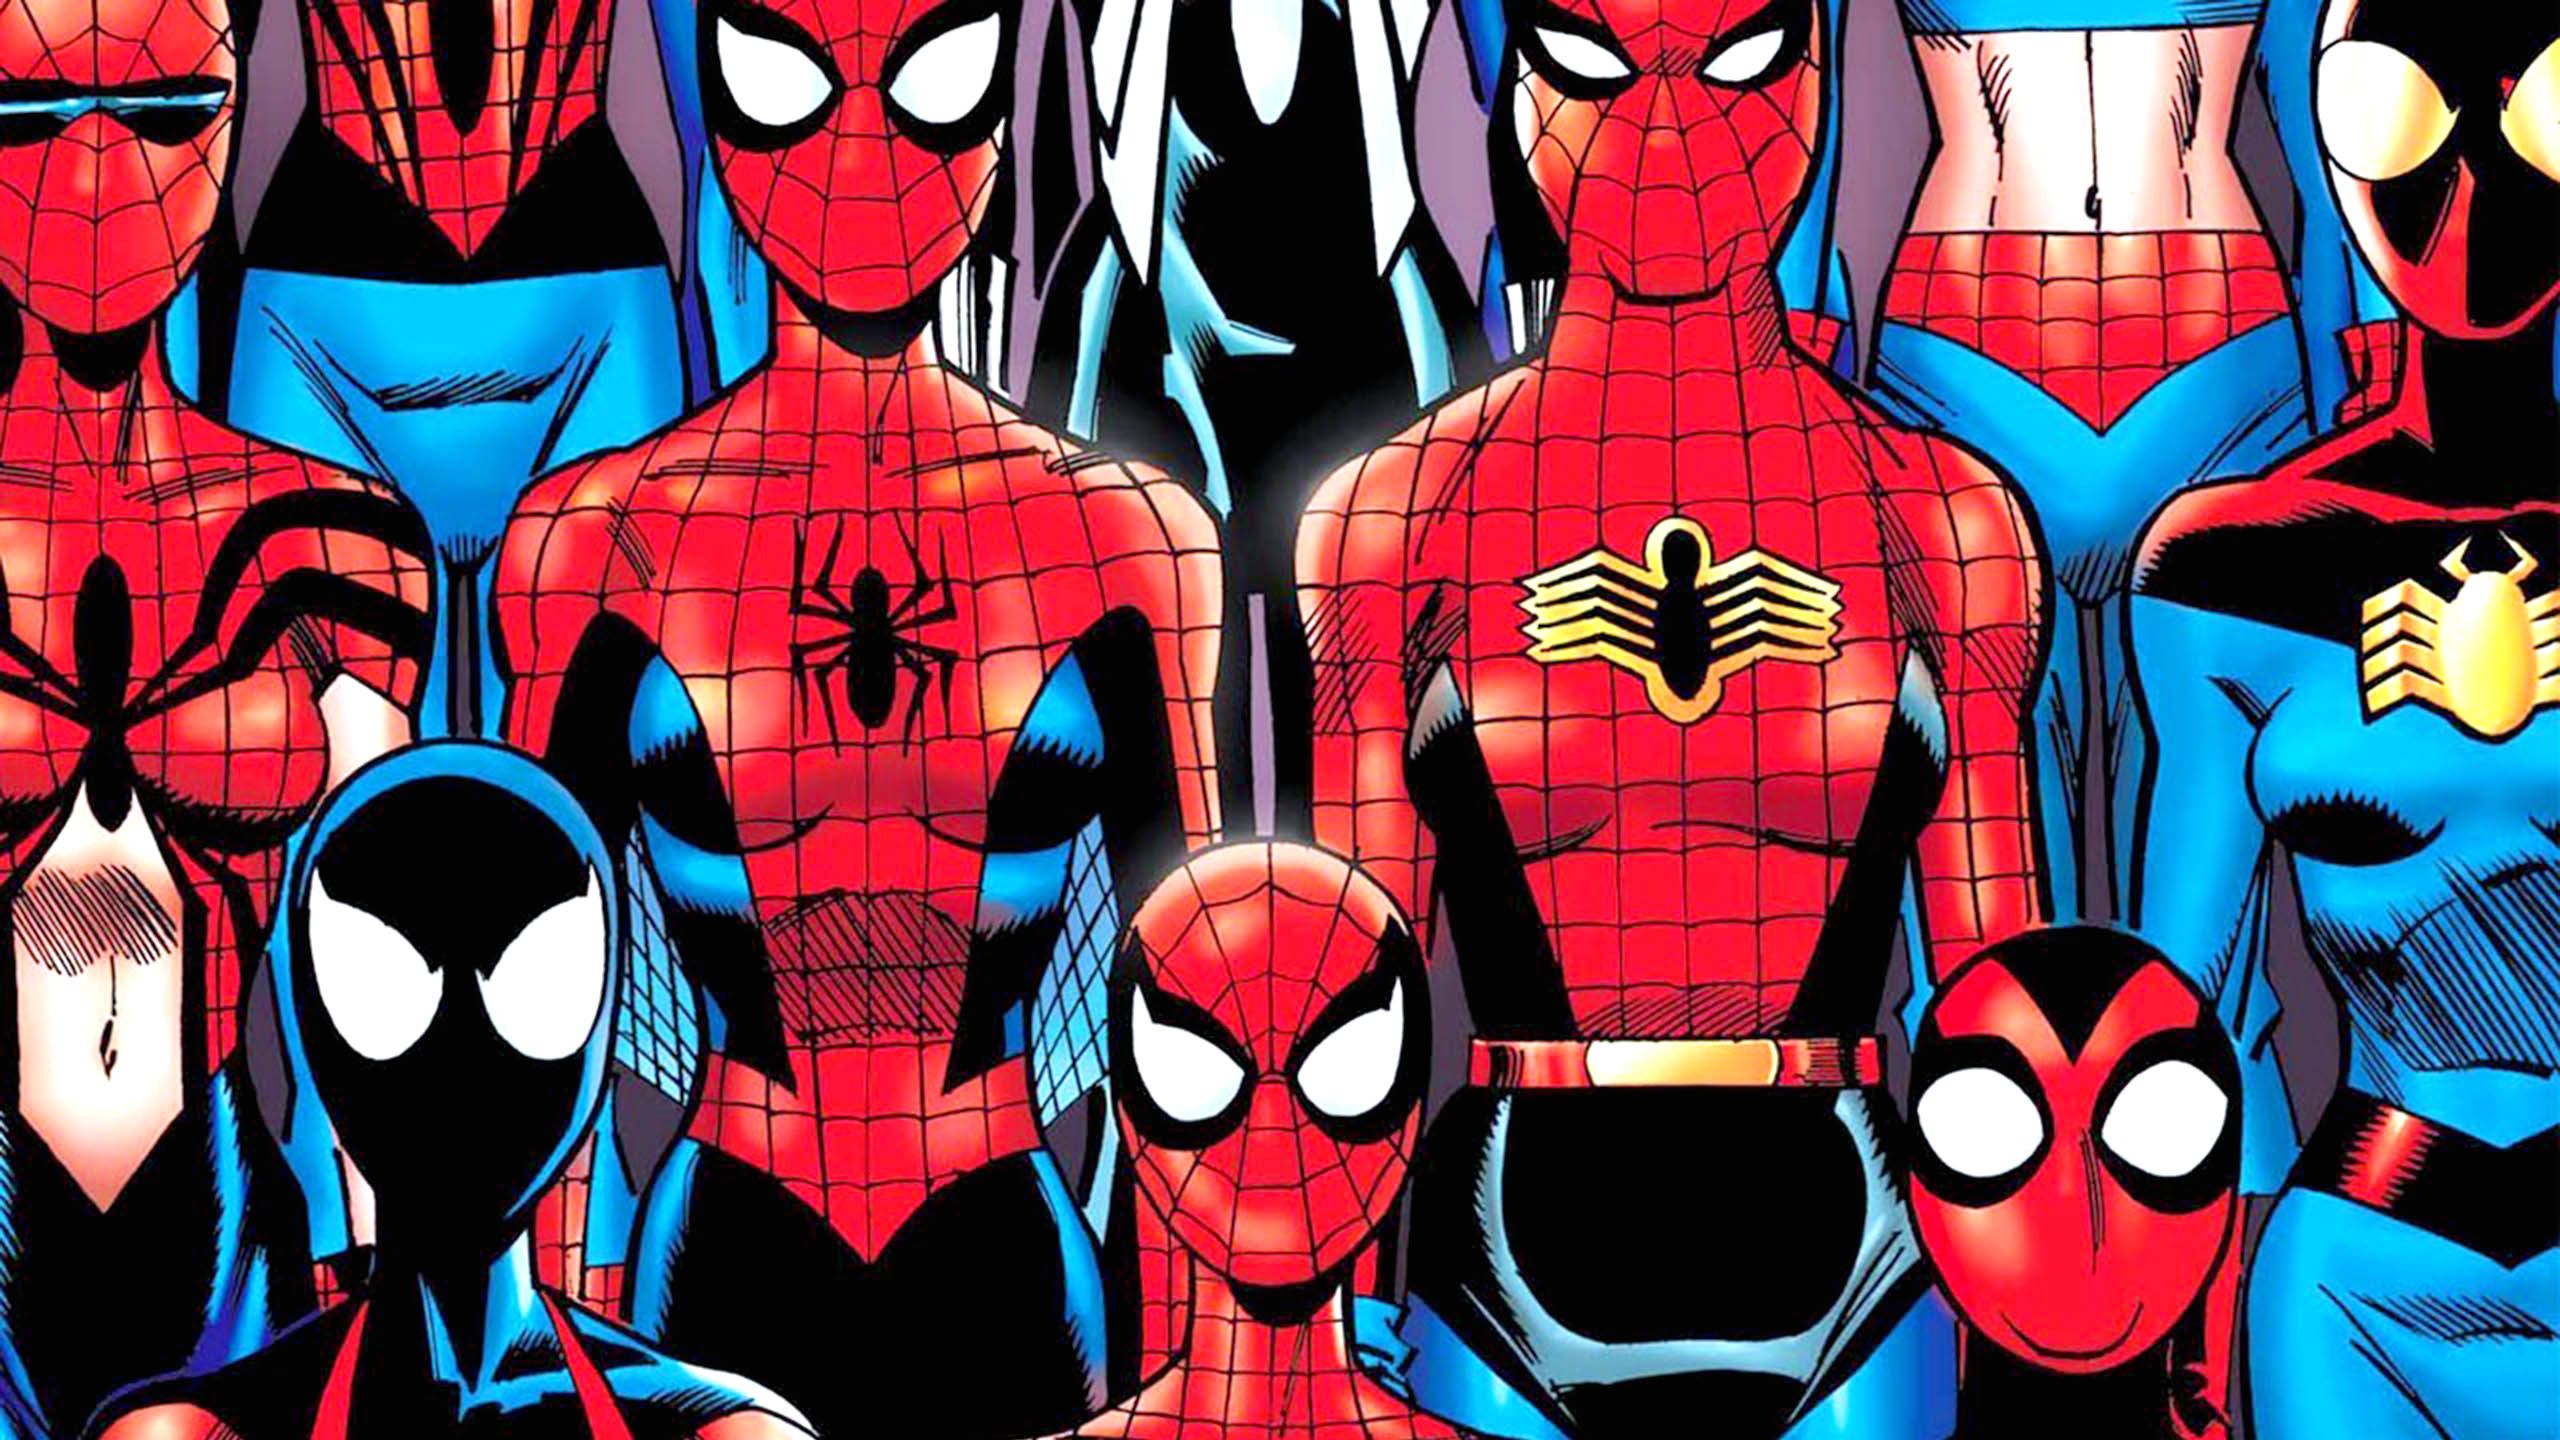 2560x1440 Spider Man Wallpapers Deadpool And Spiderman Gallery Image Mrfab